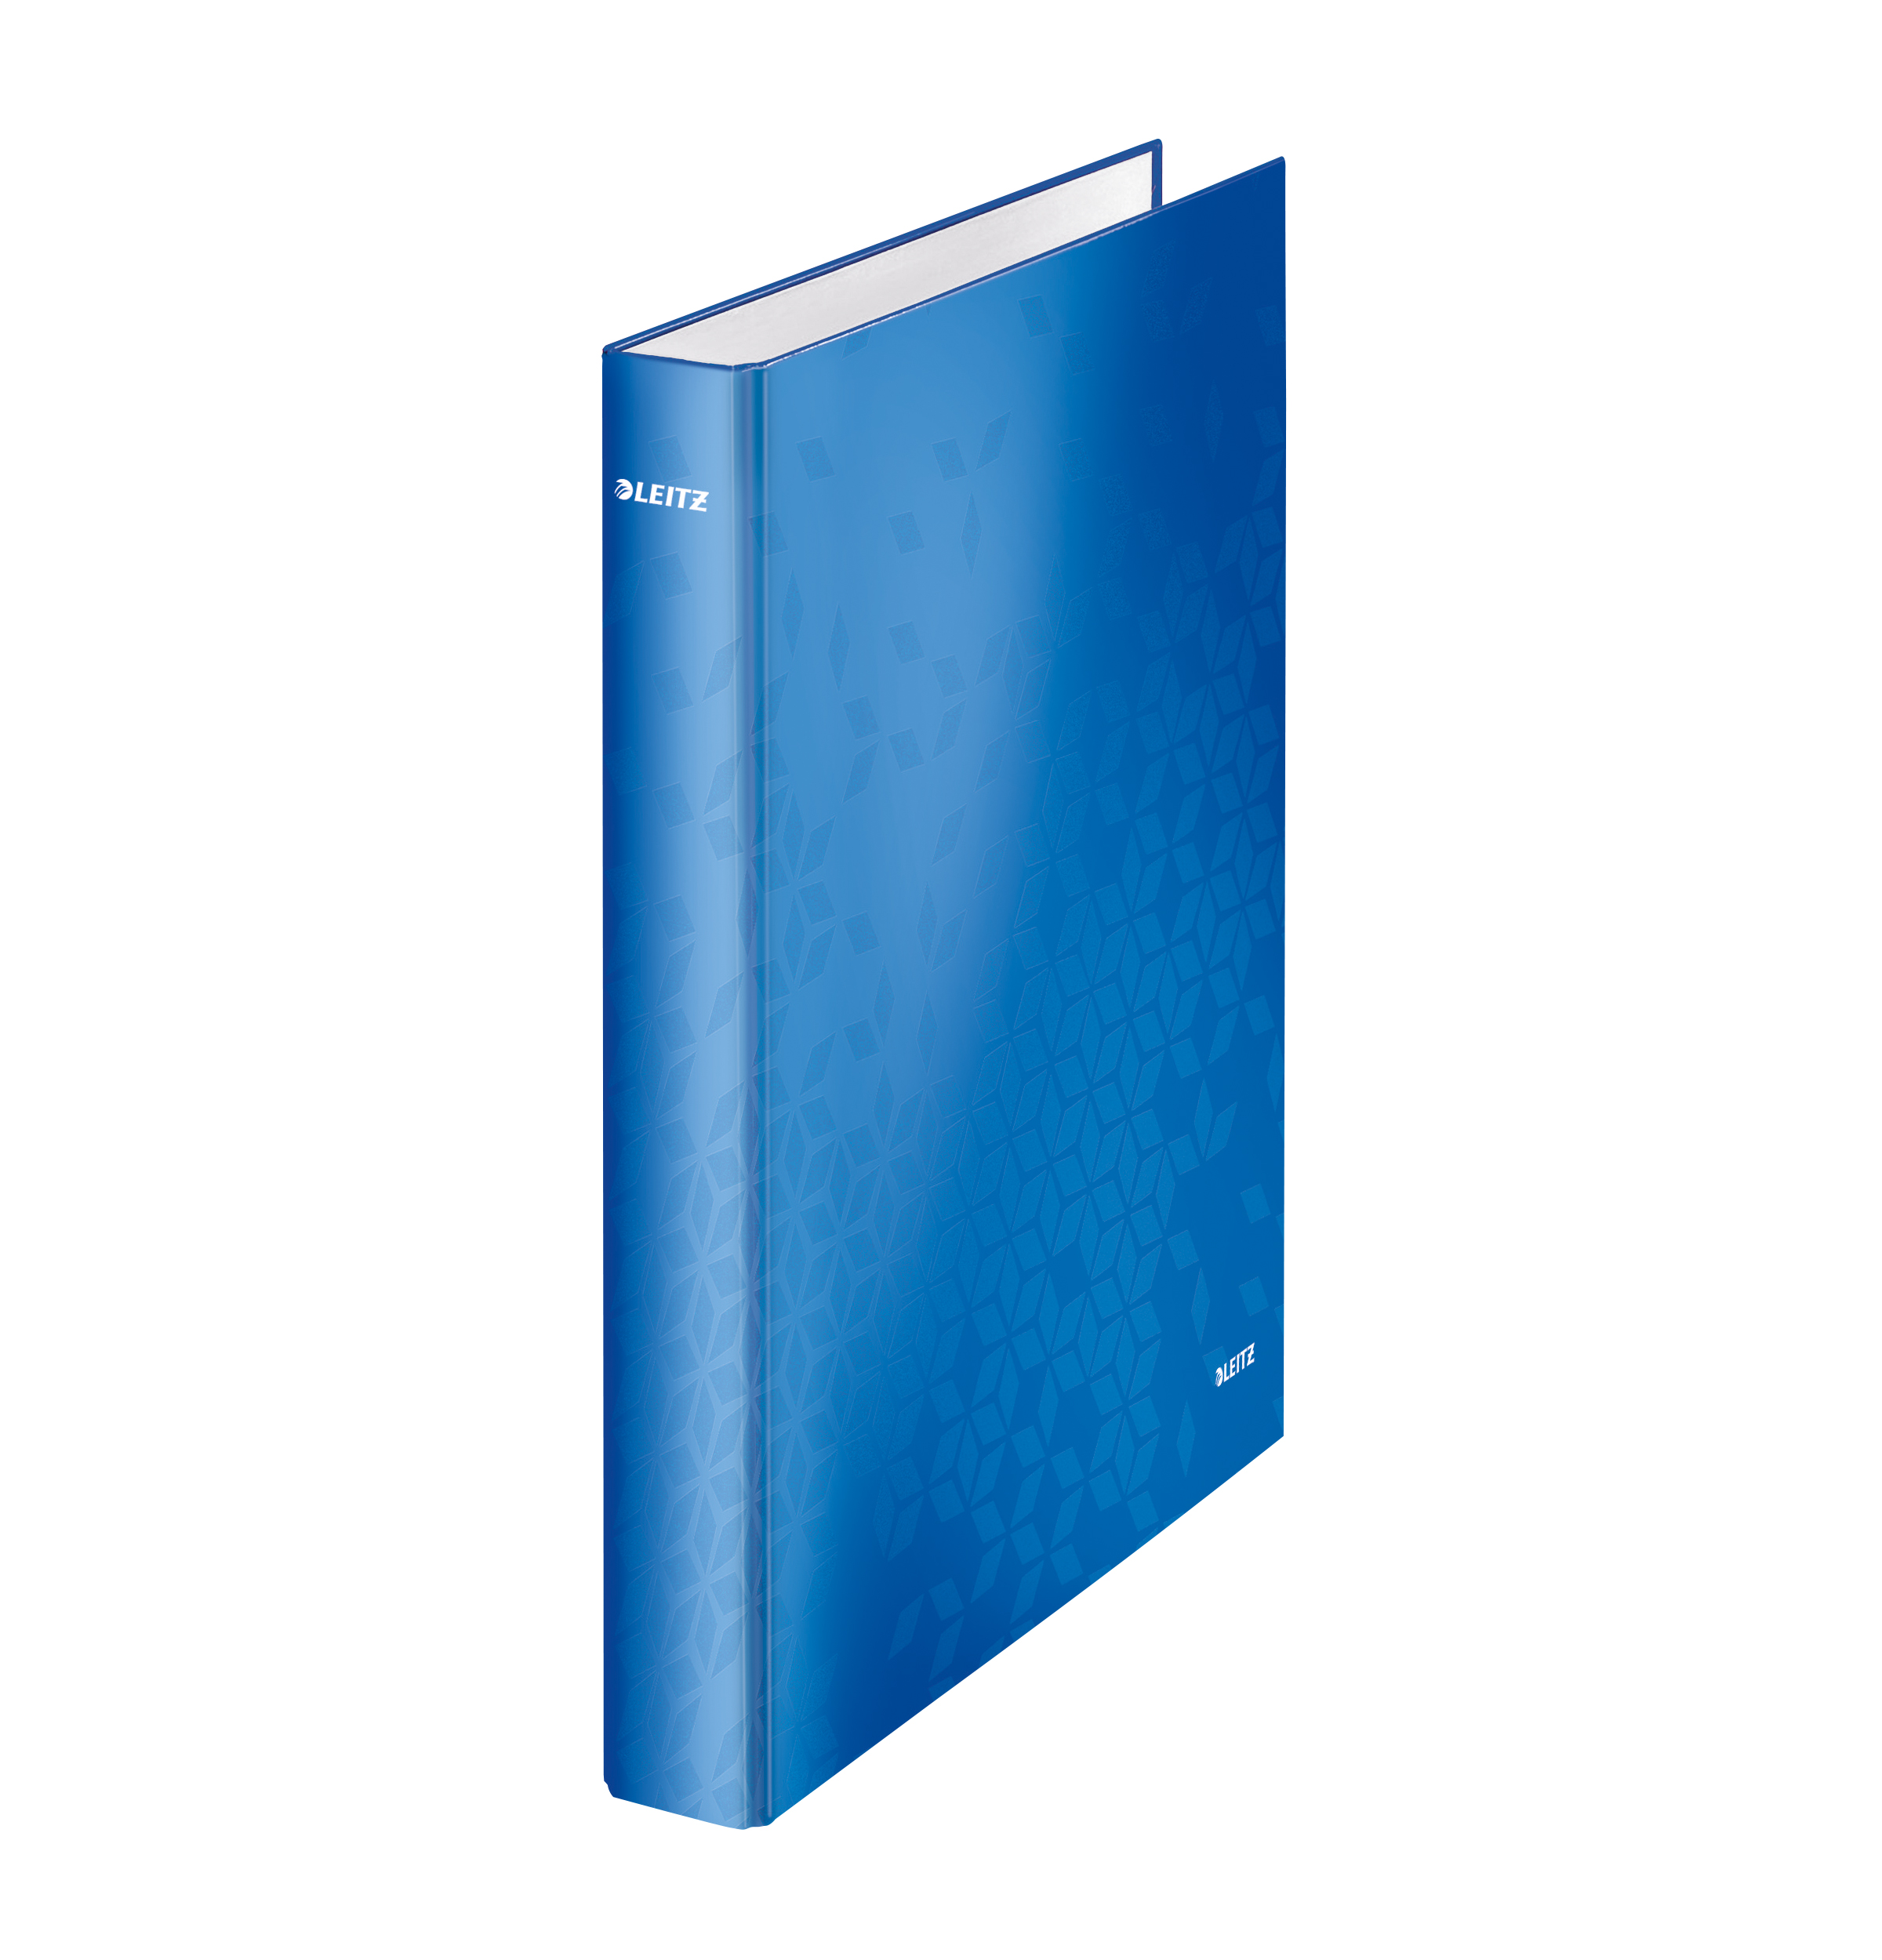 Leitz WOW Ring Binder 2 D-Ring 25mm Size A4 Blue Ref 42410036 Pack 10